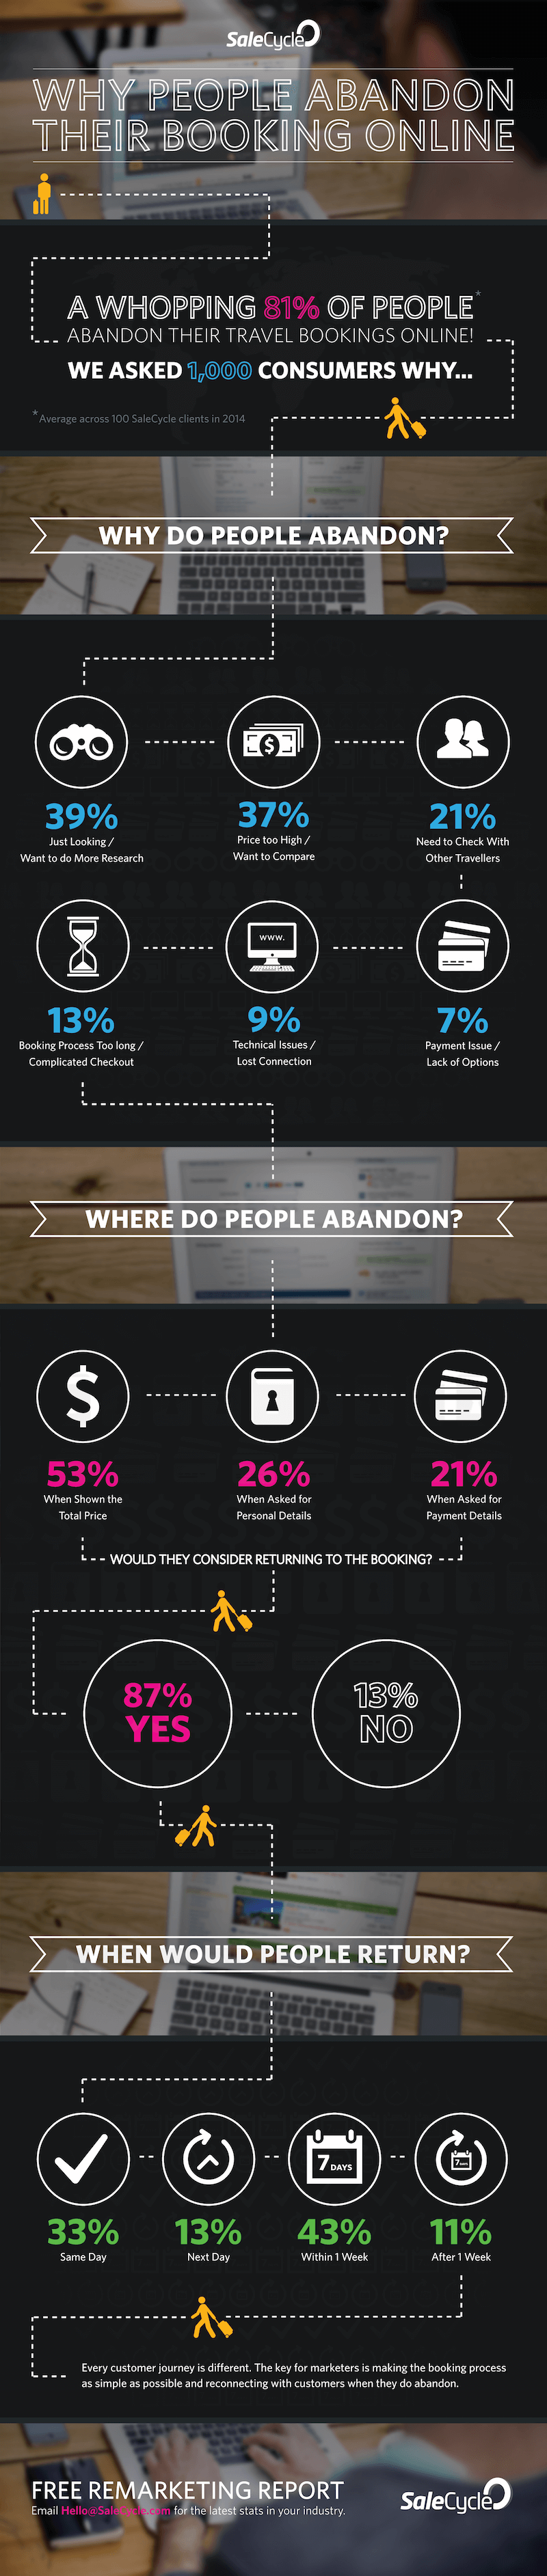 Booking Abandonment Infographic